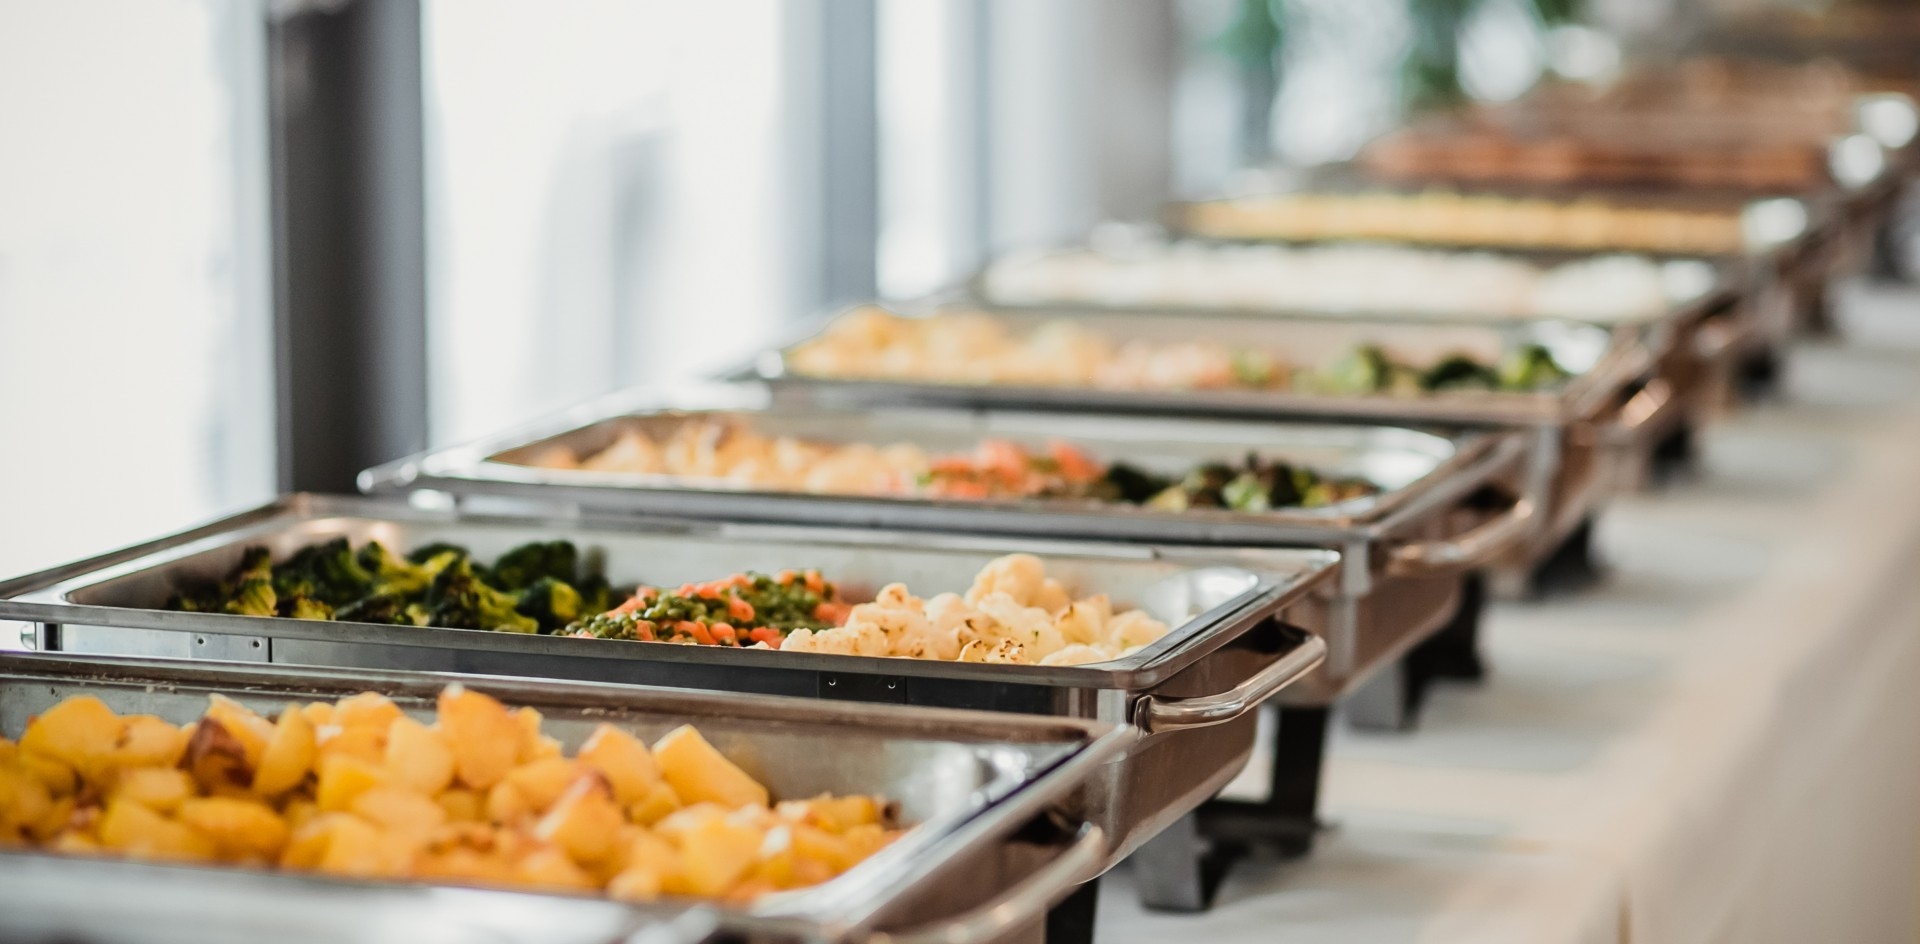 OUR DELICIOUS CATERING MENU